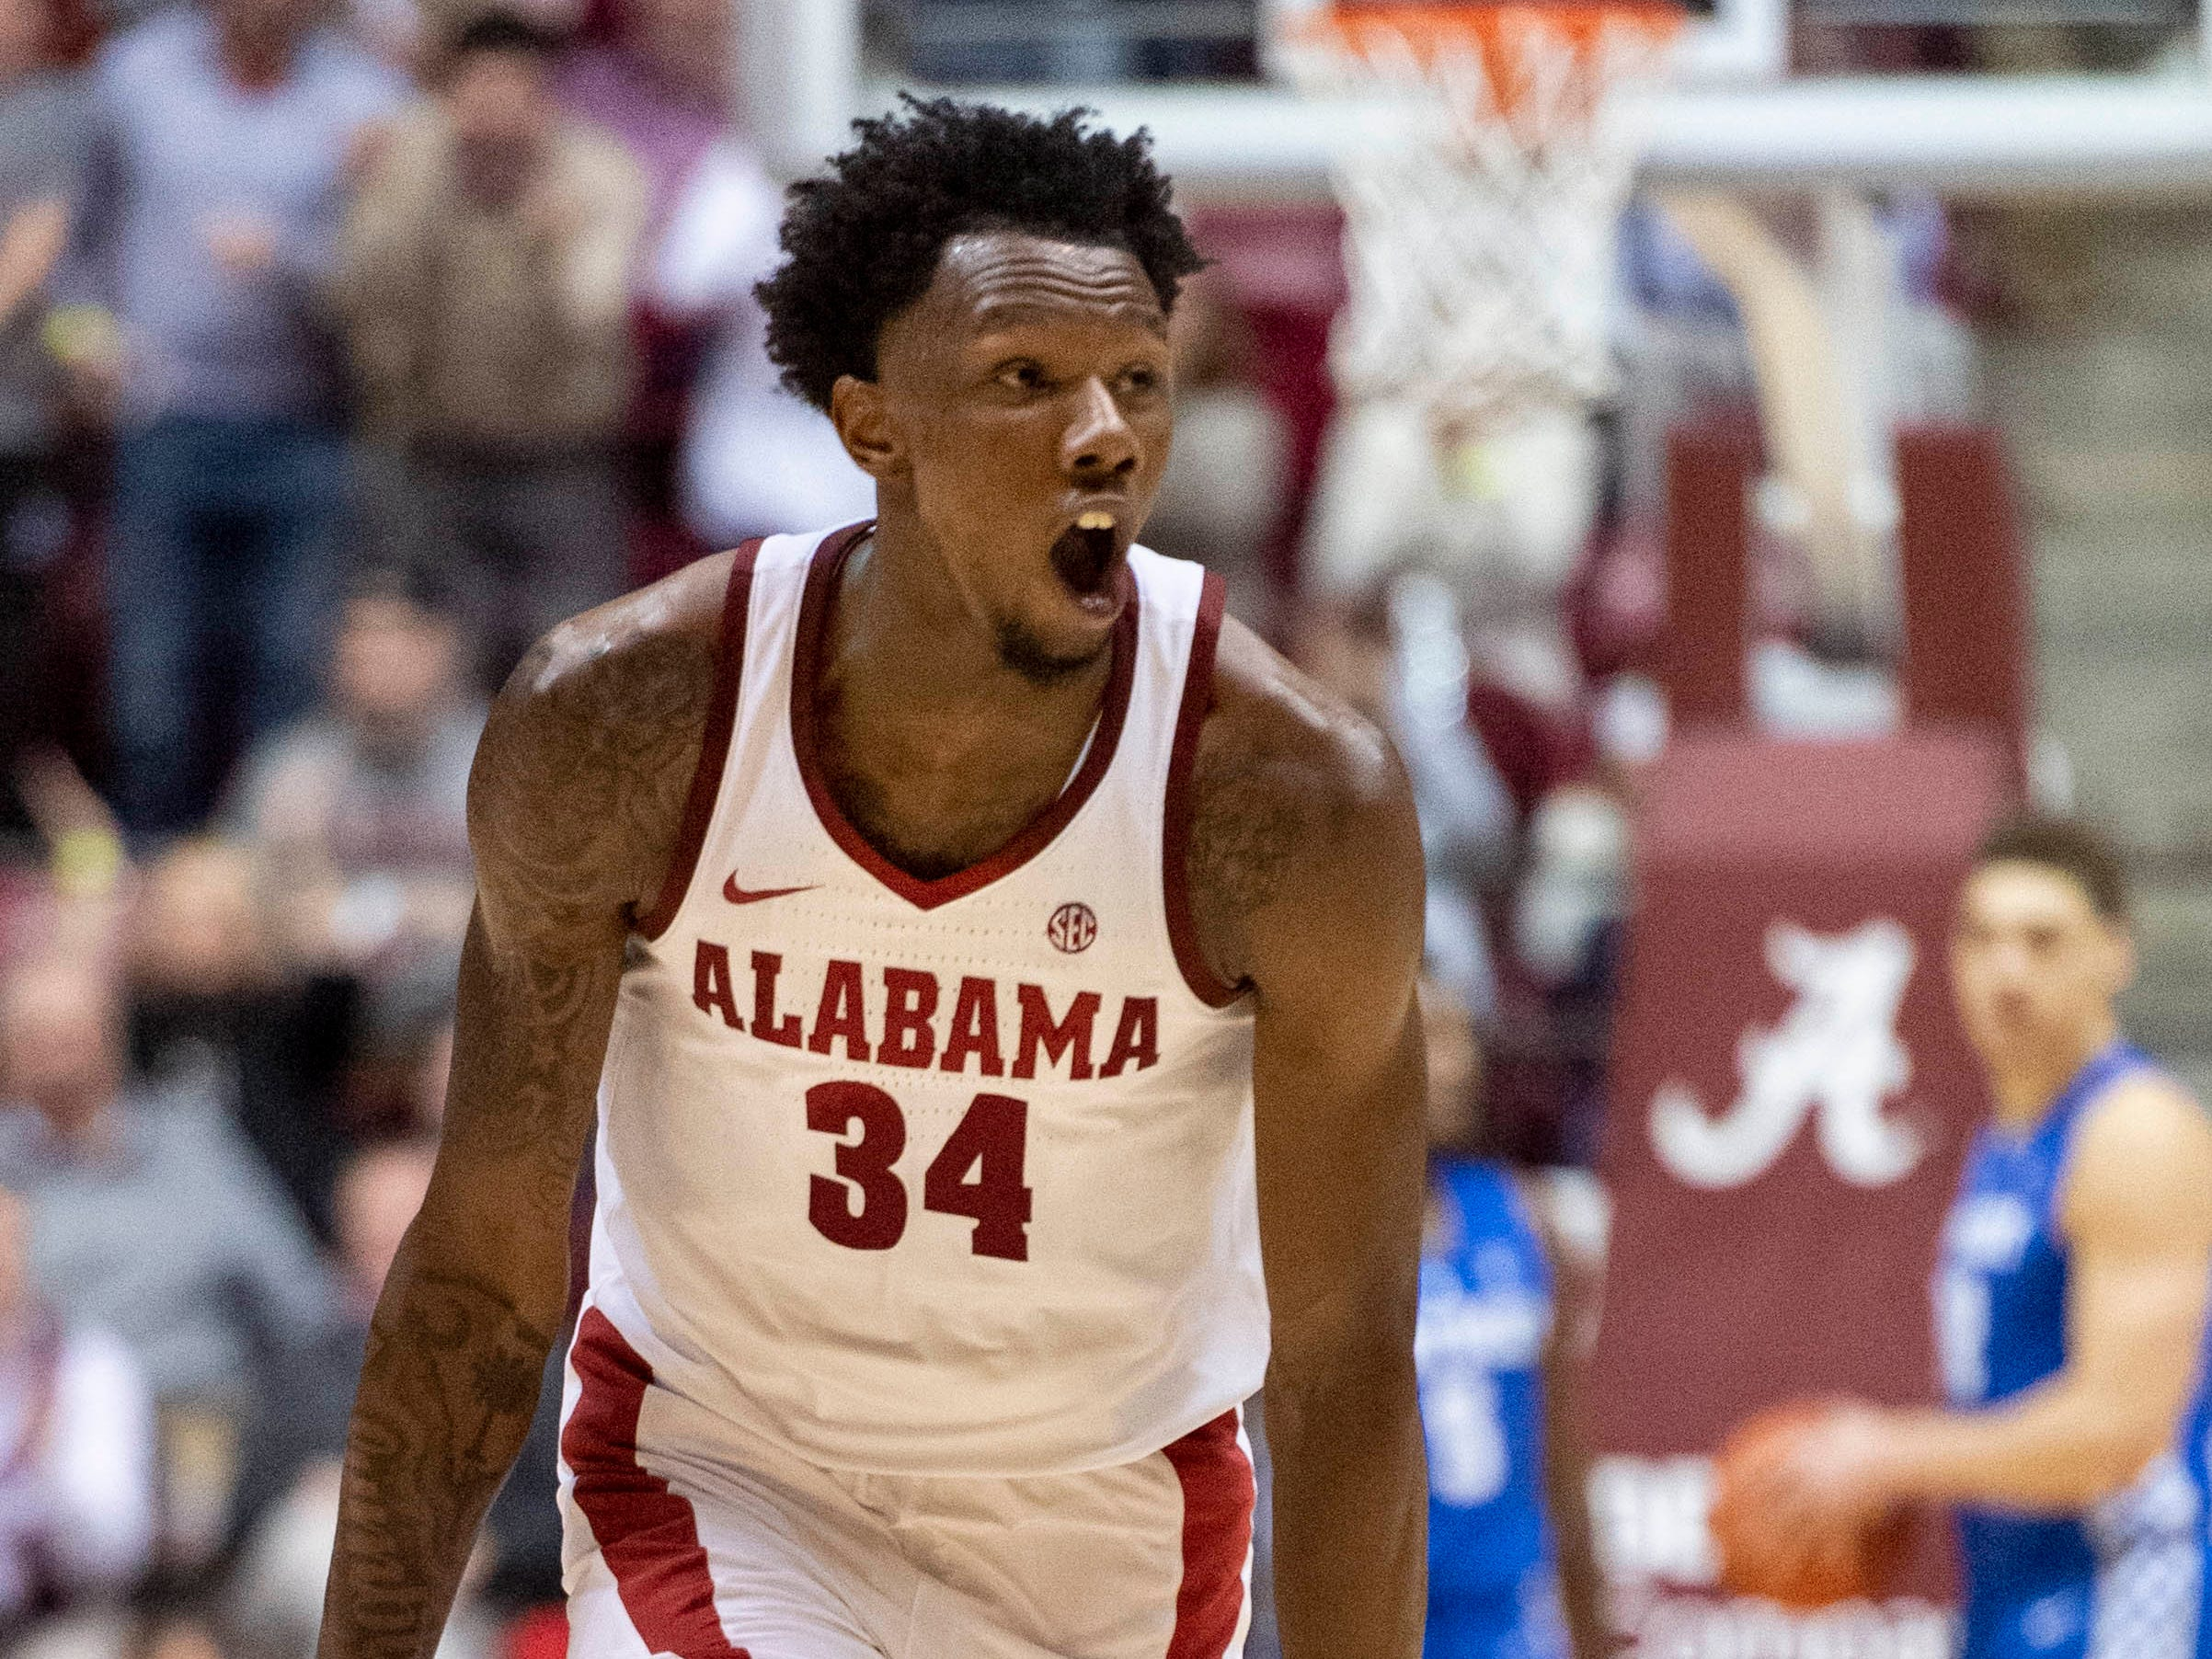 Alabama guard/forward Tevin Mack (34) Cele celebrates a three-pointer against Kentucky during the first half of an NCAA college basketball game, Saturday, Jan. 5, 2019, in Tuscaloosa, Ala.